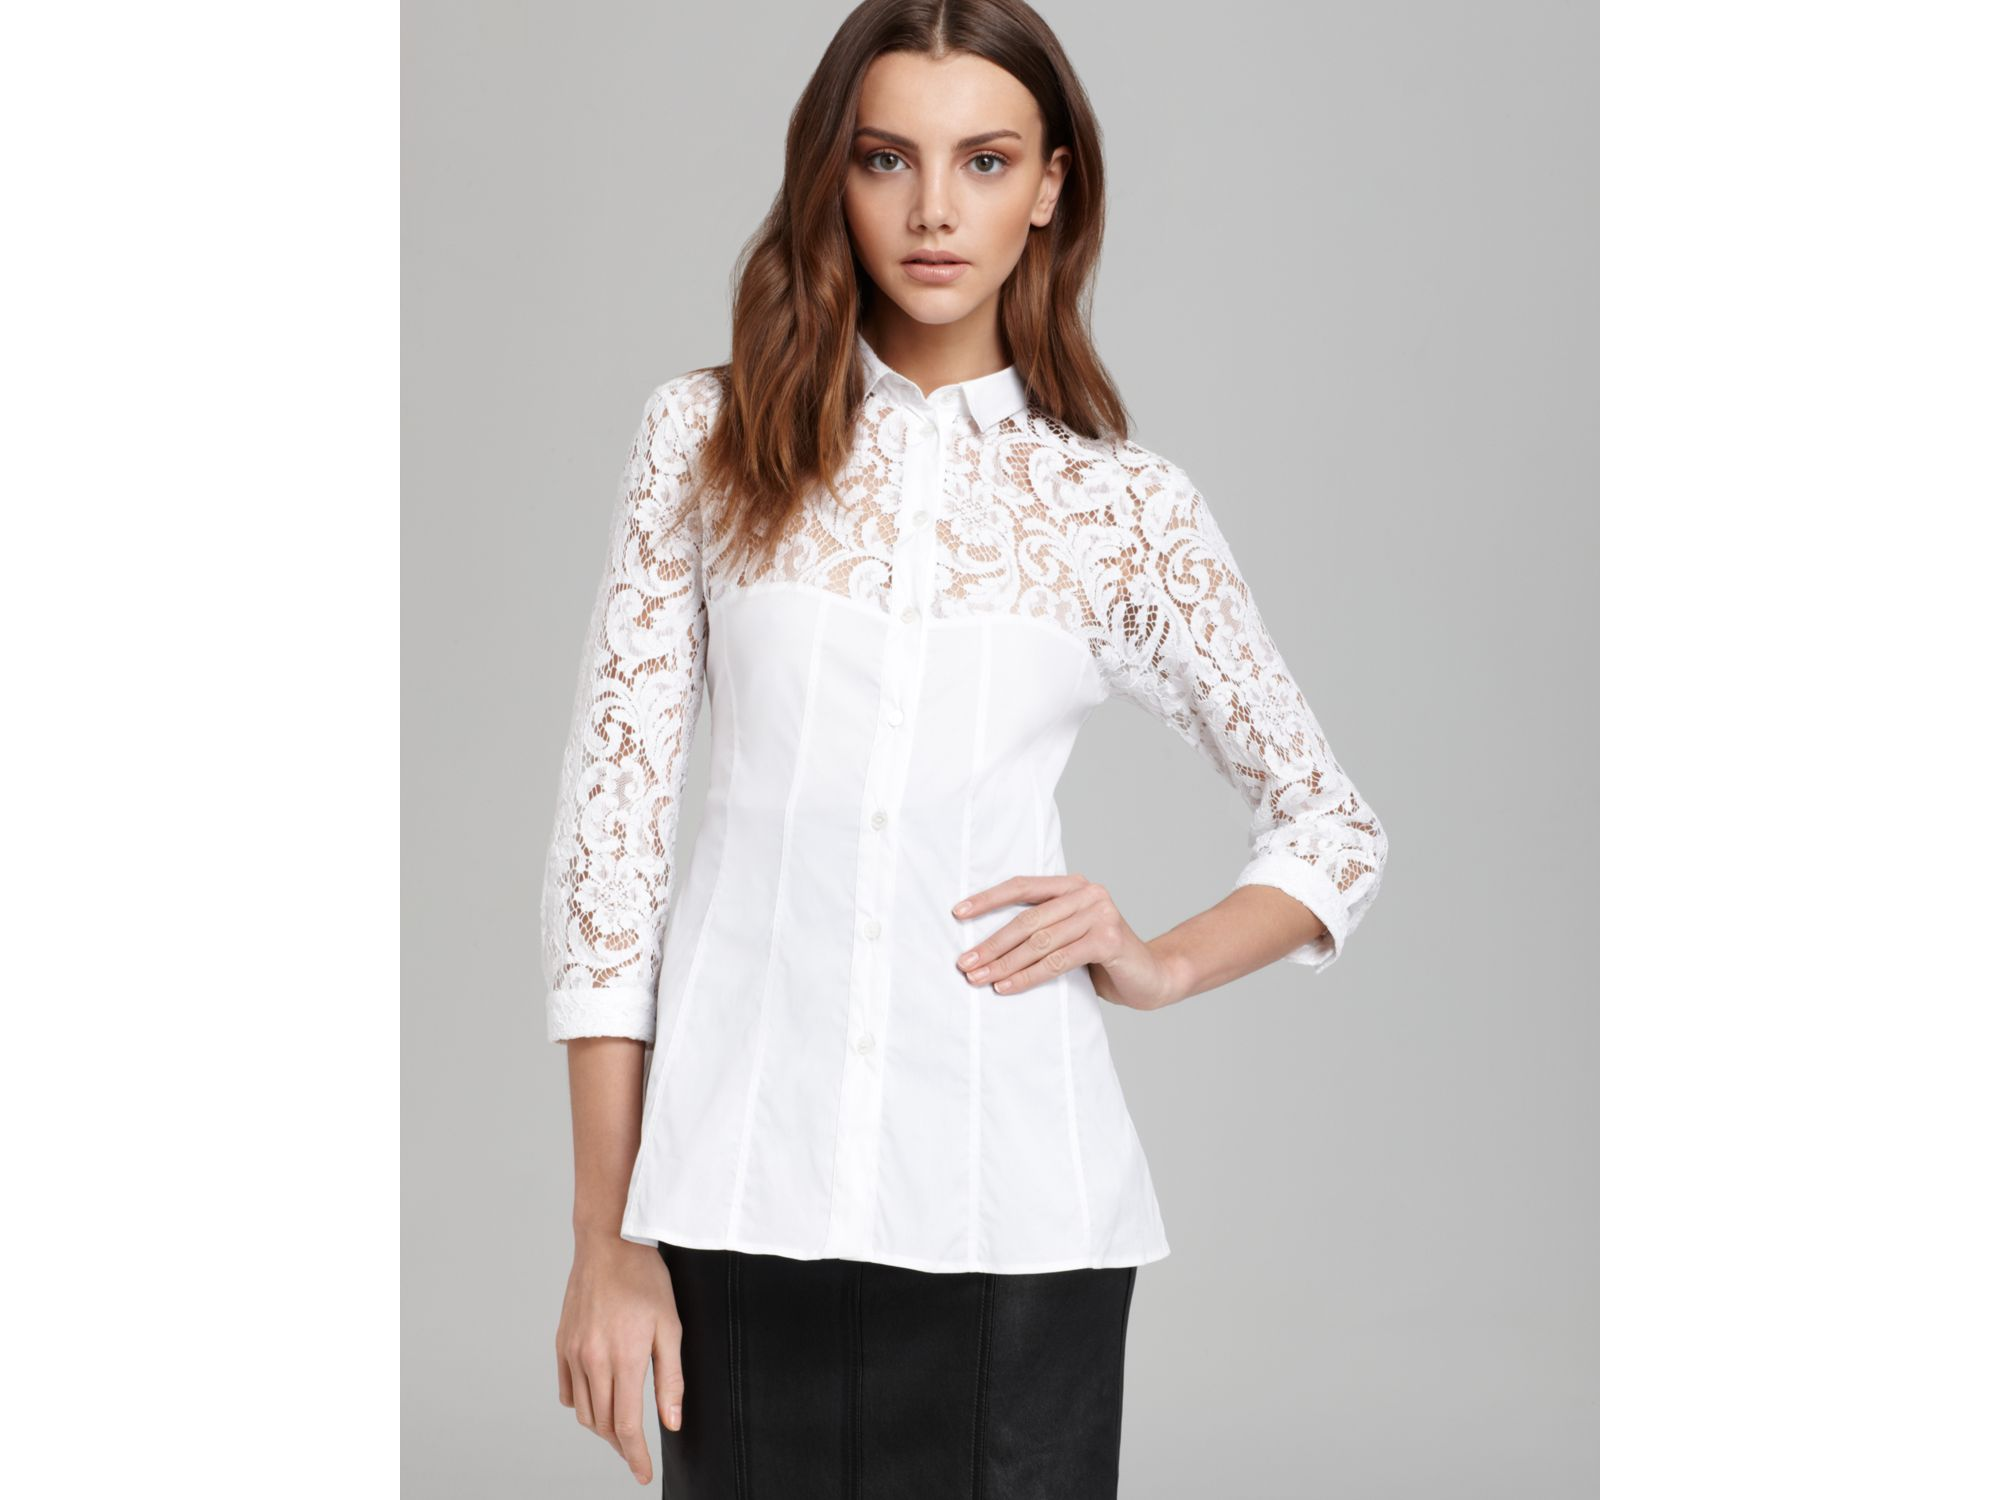 Lyst Burberry London Blouse White Lace In White